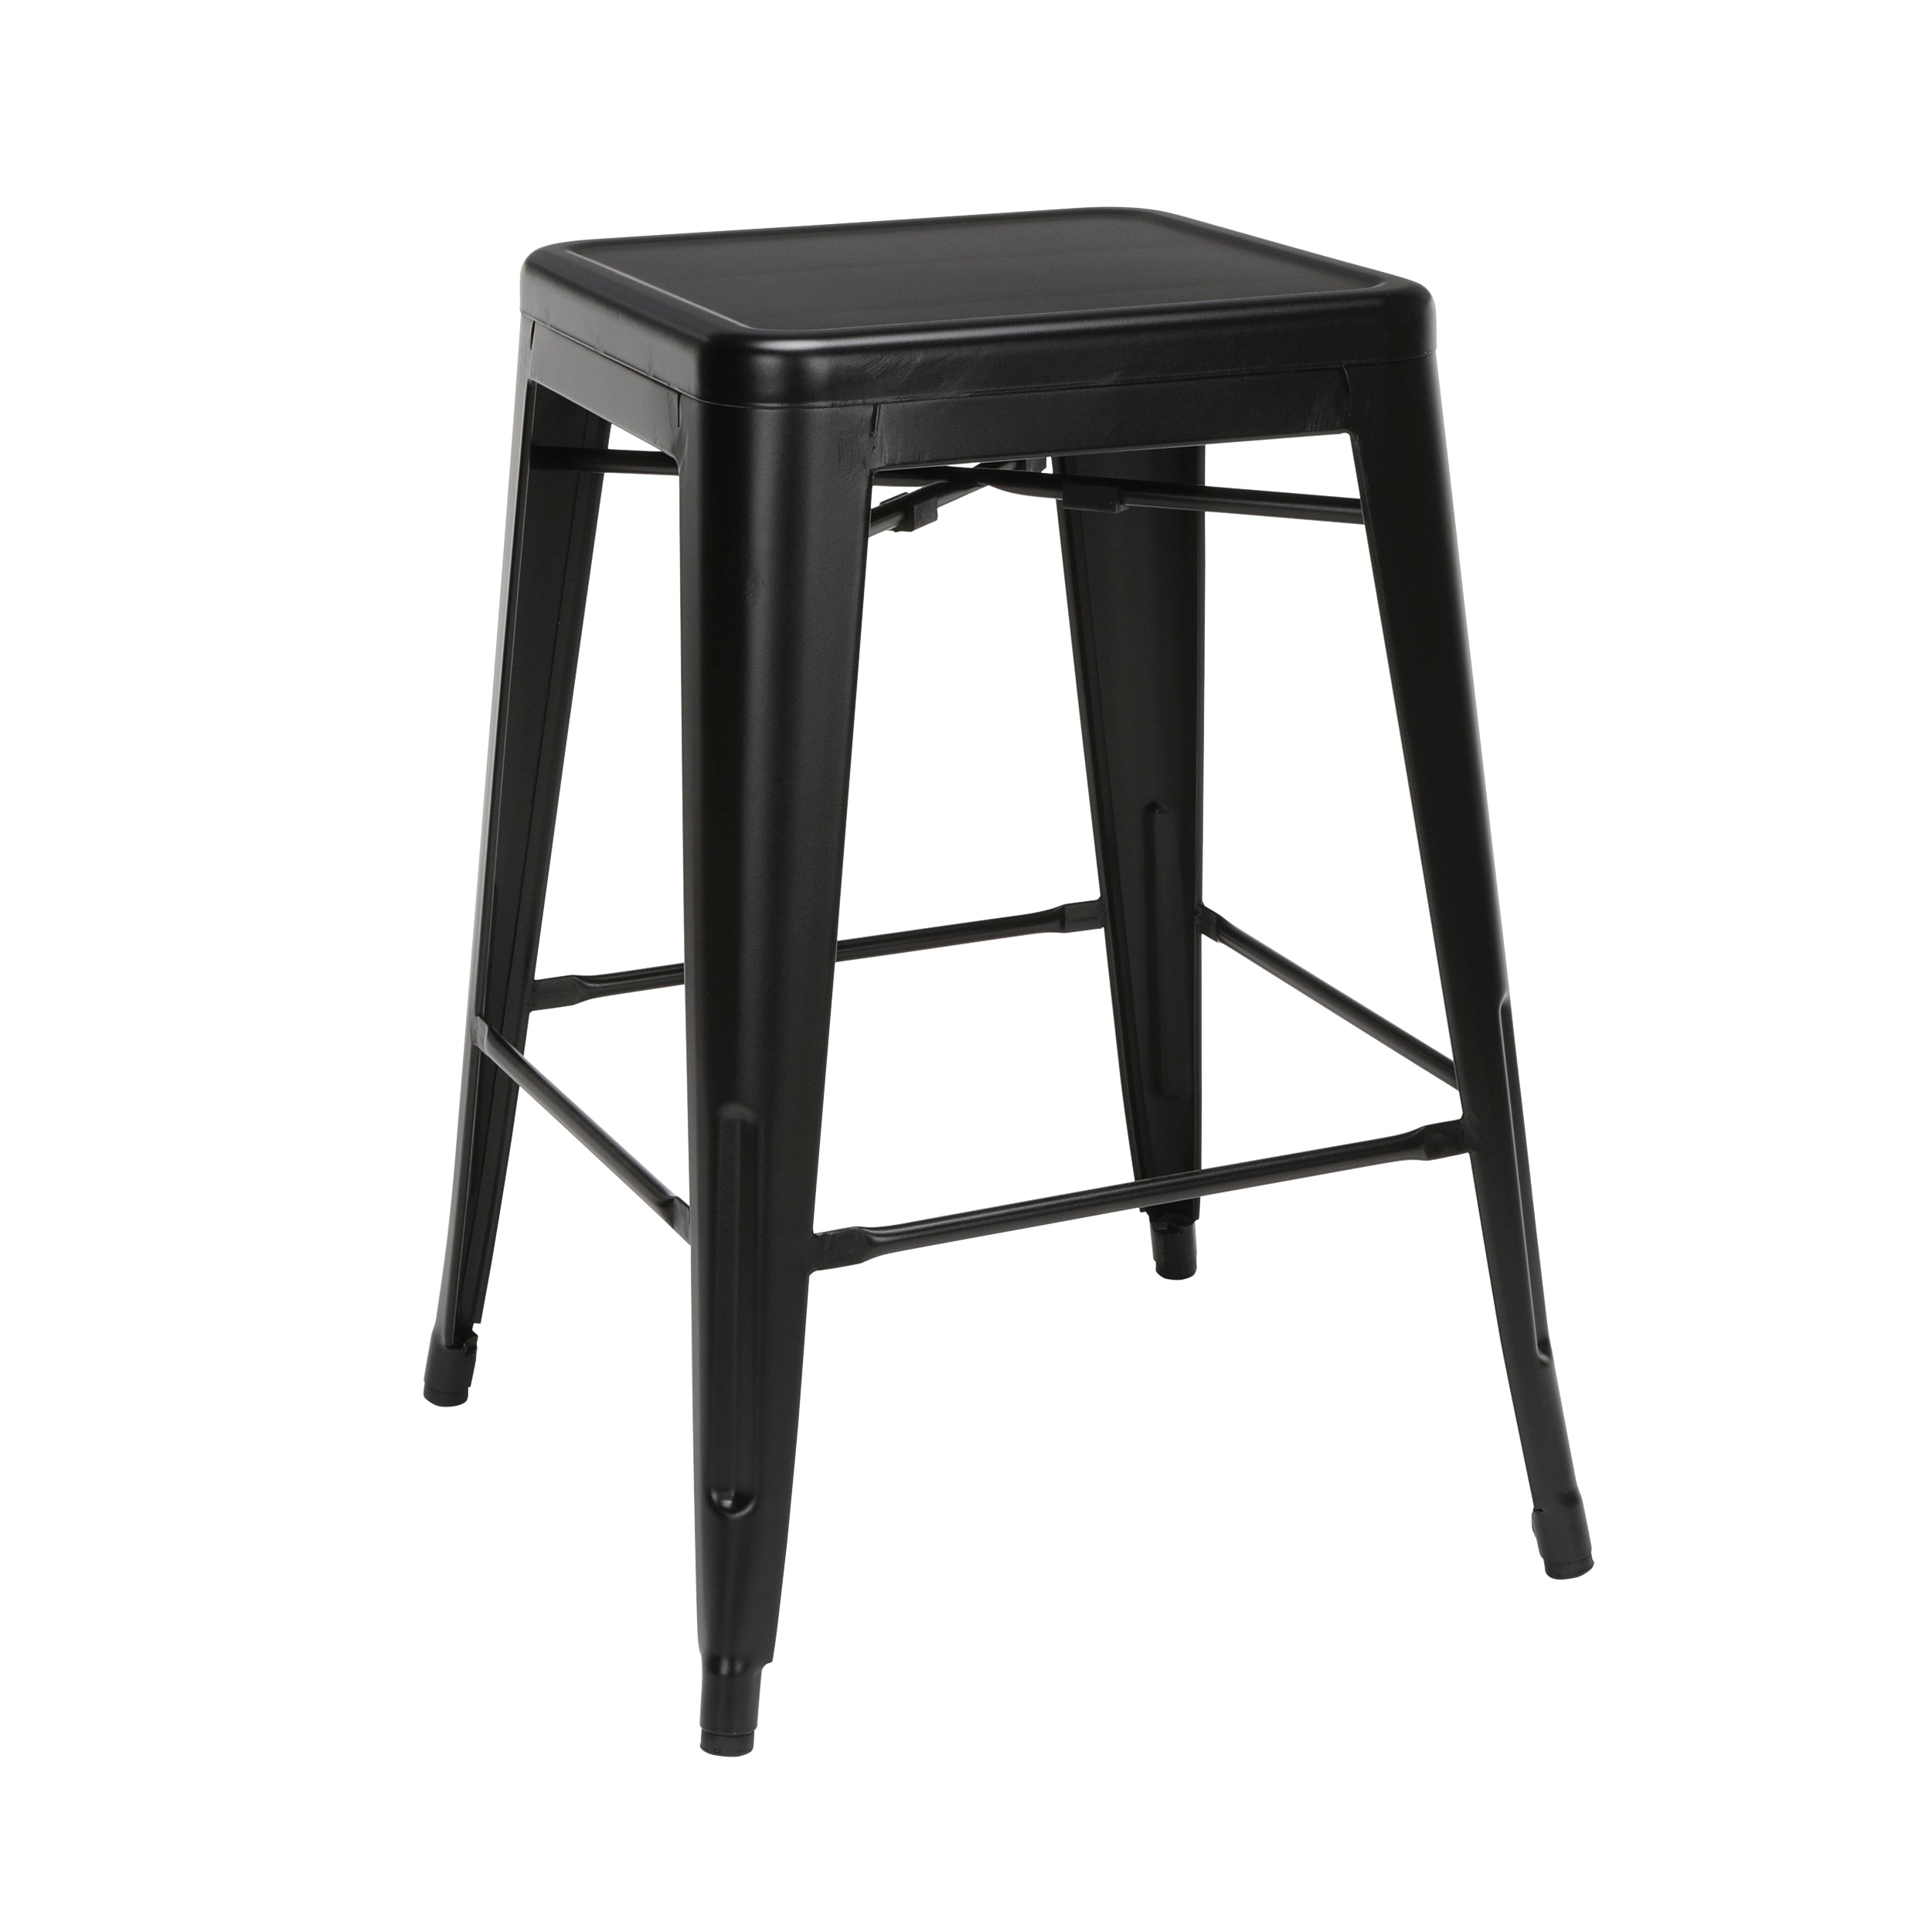 "26"" Backless Metal Stools Steel Bar Stool with Oversized Seat-Black"